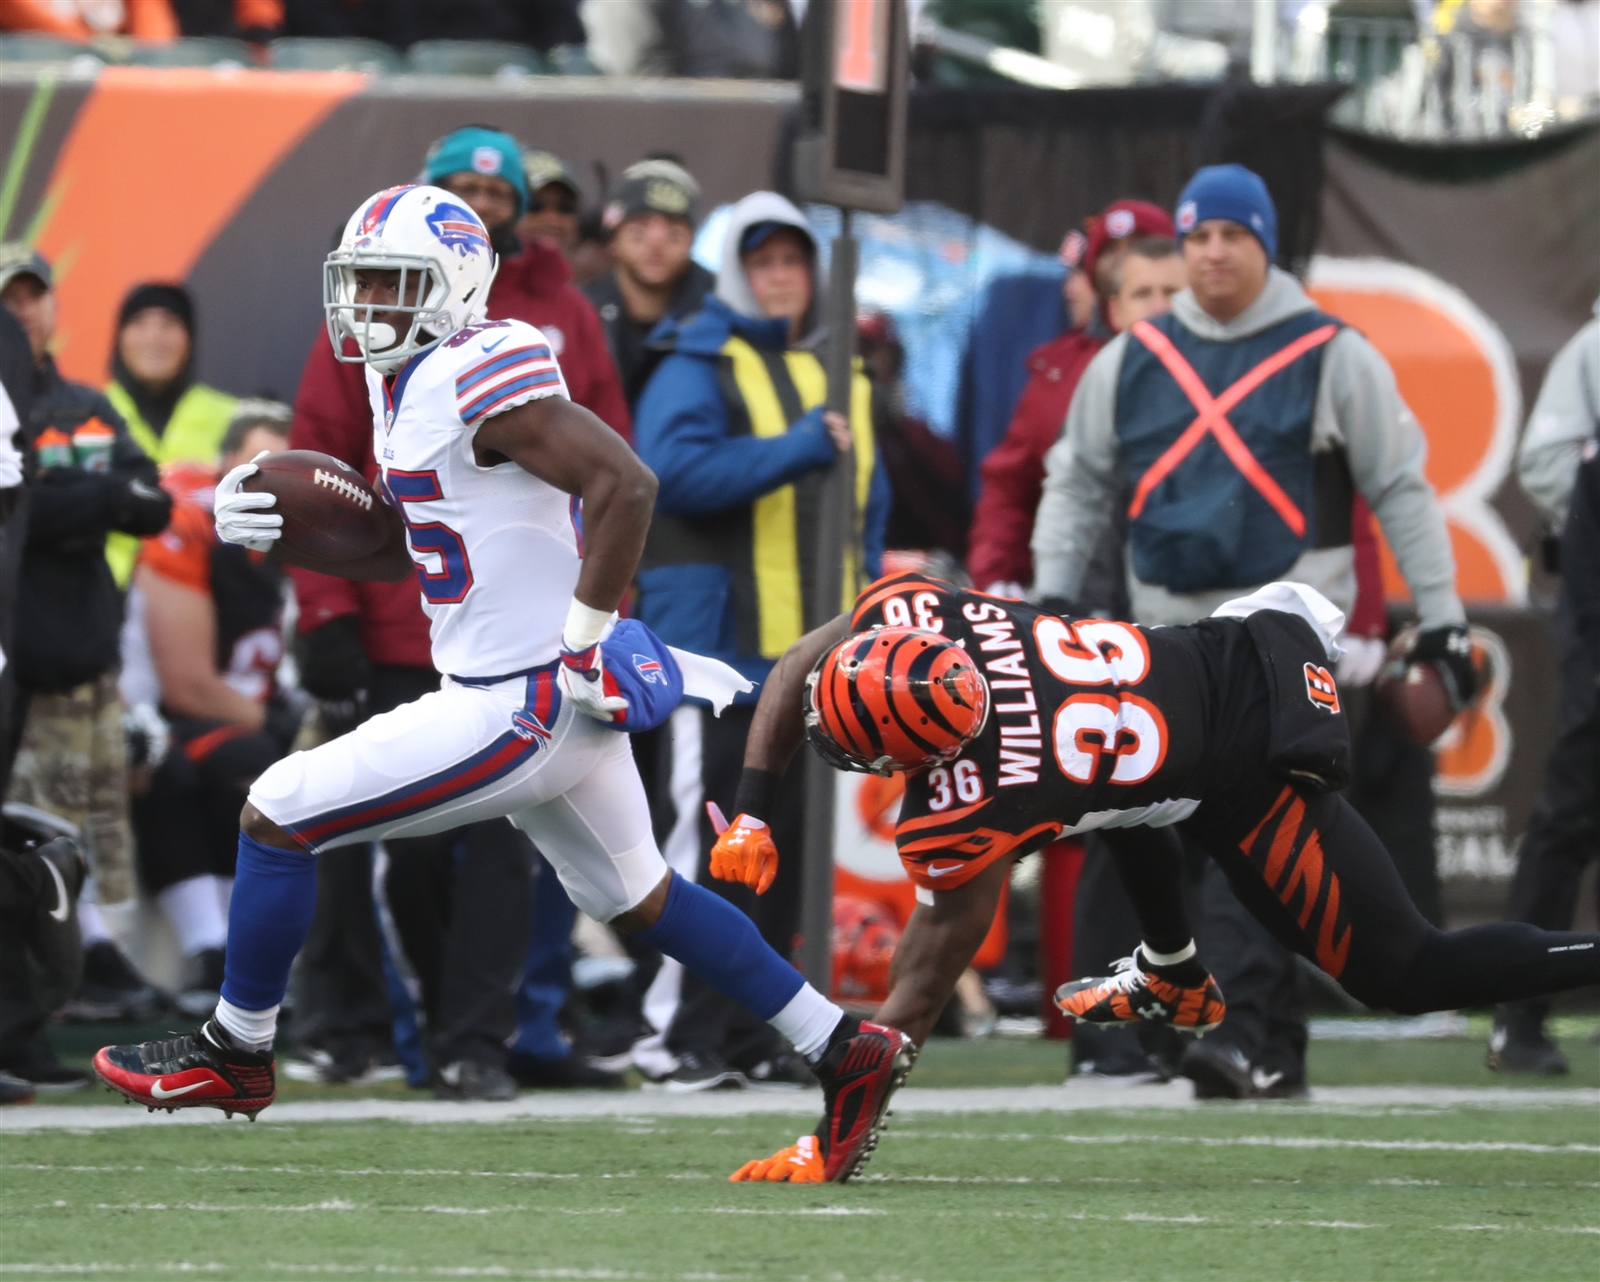 BILLS RUNNING GAME (B+): LeSean McCoy looked like the MVP candidate of the first six weeks early, gaining 33 yards on five carries before getting hurt. The good news is the running game didnu2019t miss a beat with him out. No. 2 running back Mike Gillislee gained 72 yards on 14 carries, part of 183 yards on 34 team carries. The big problem for the run game was near the goal line. On three runs from inside the 5-yard line, the Bills were stopped, and a holding penalty on guard Richie Incognito negated a 3-yard touchdown run by Tyrod Taylor on another play.